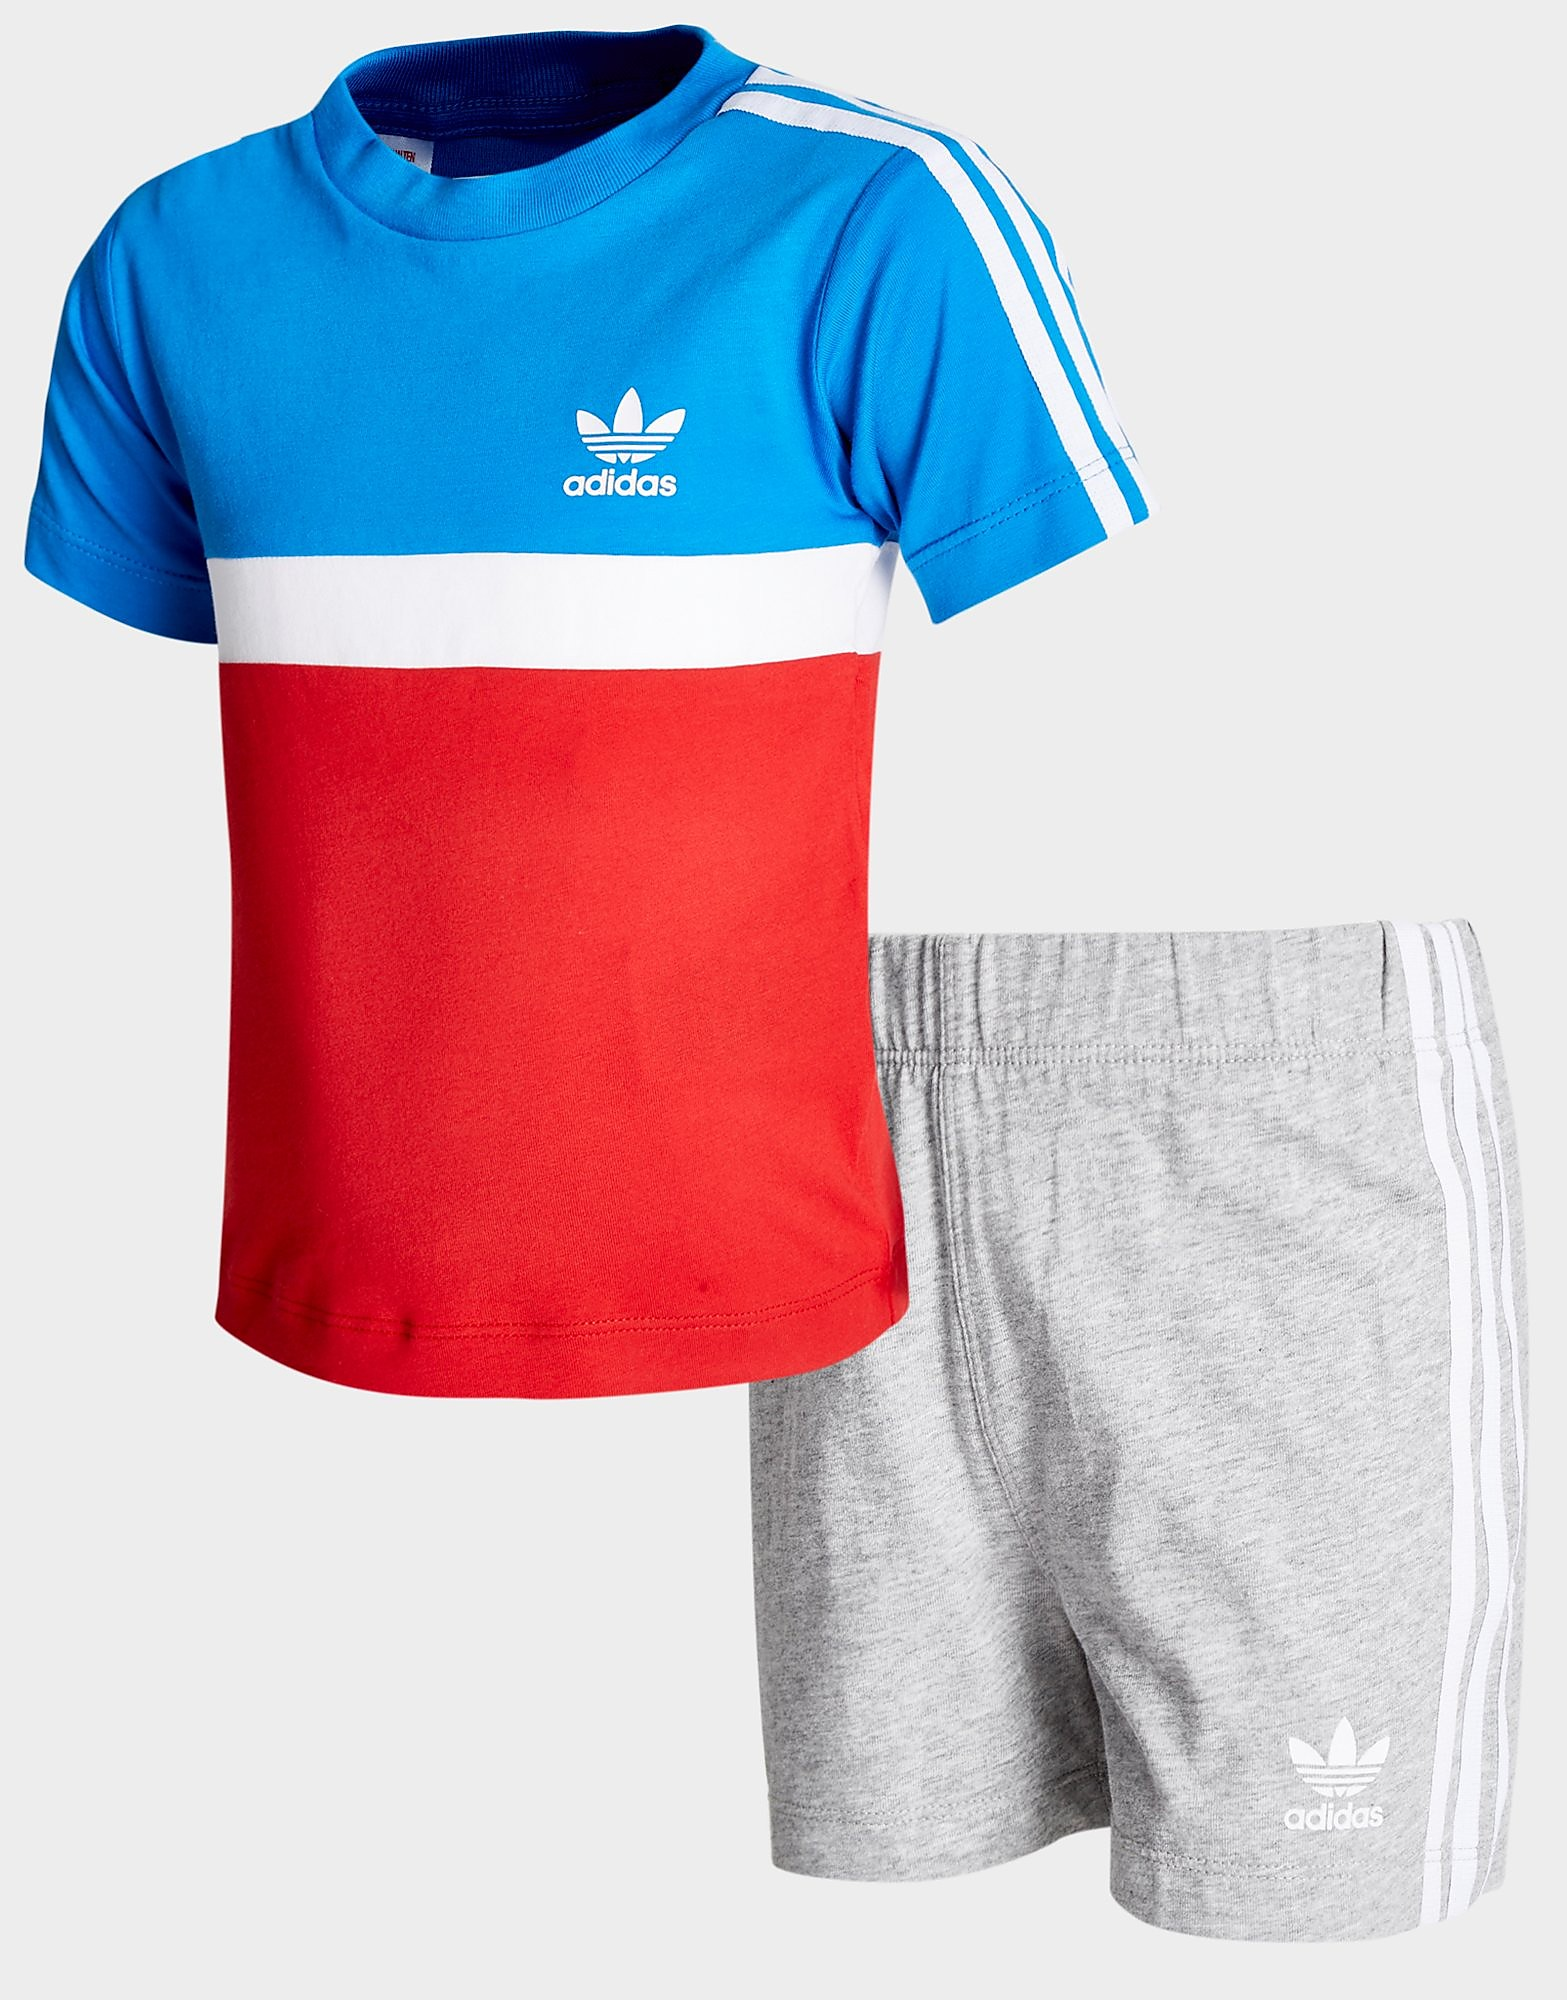 adidas Originals Itasca T-Shirt/Shorts Set Baby's